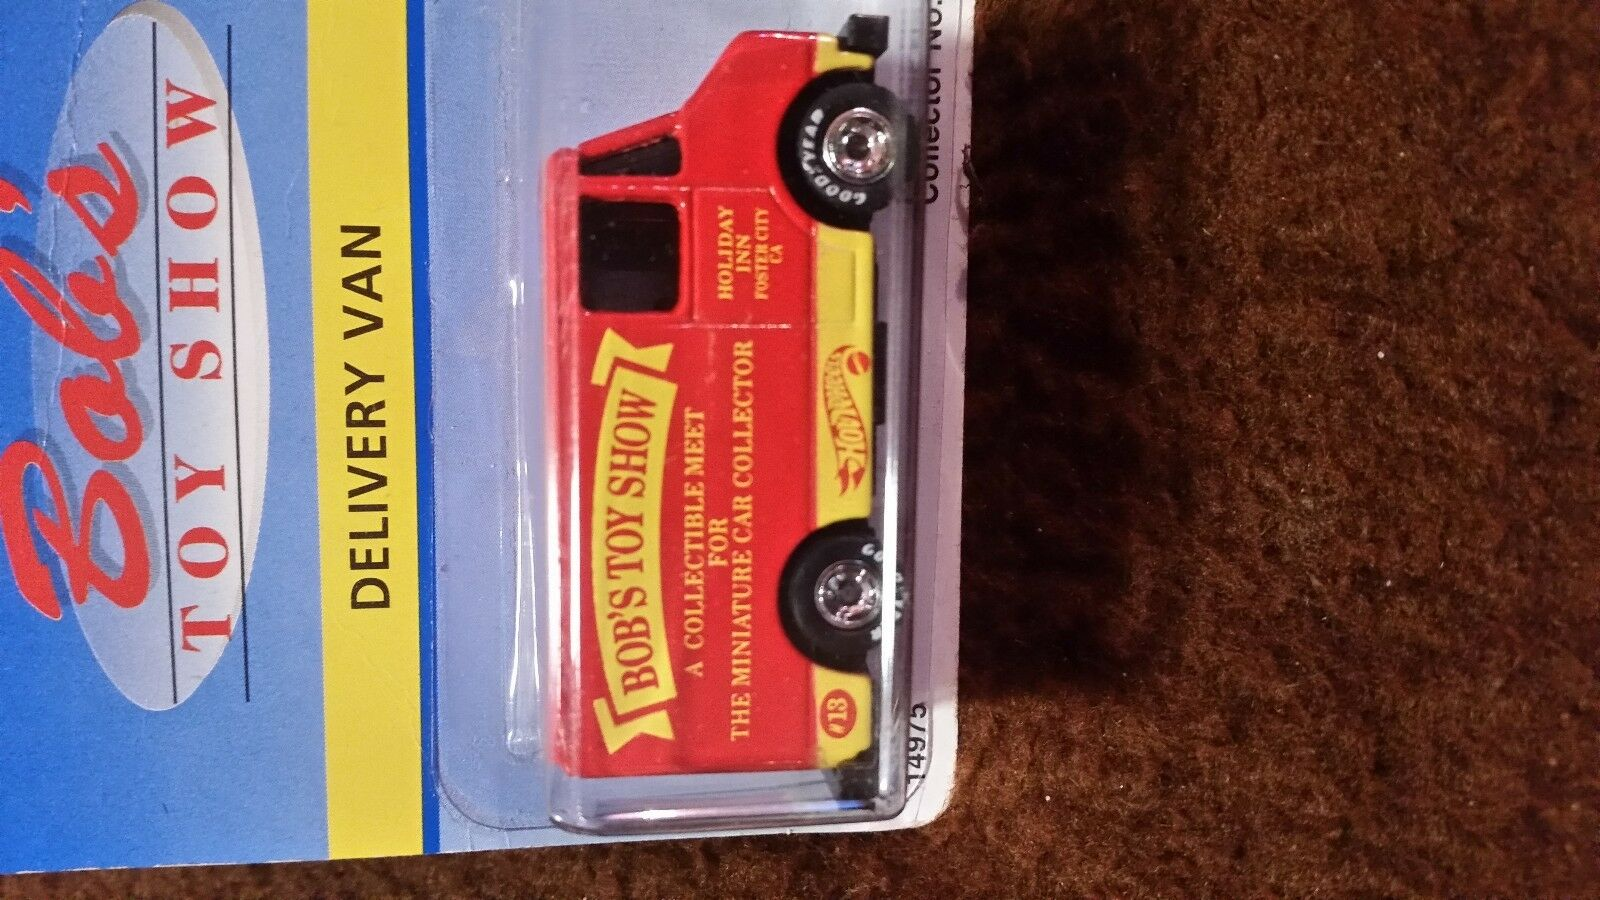 HOT WHEELS BOBS BOBS BOBS DELIVERY VAN- RARE VHTFblueE CARD-VARIATION1989 93e8c1